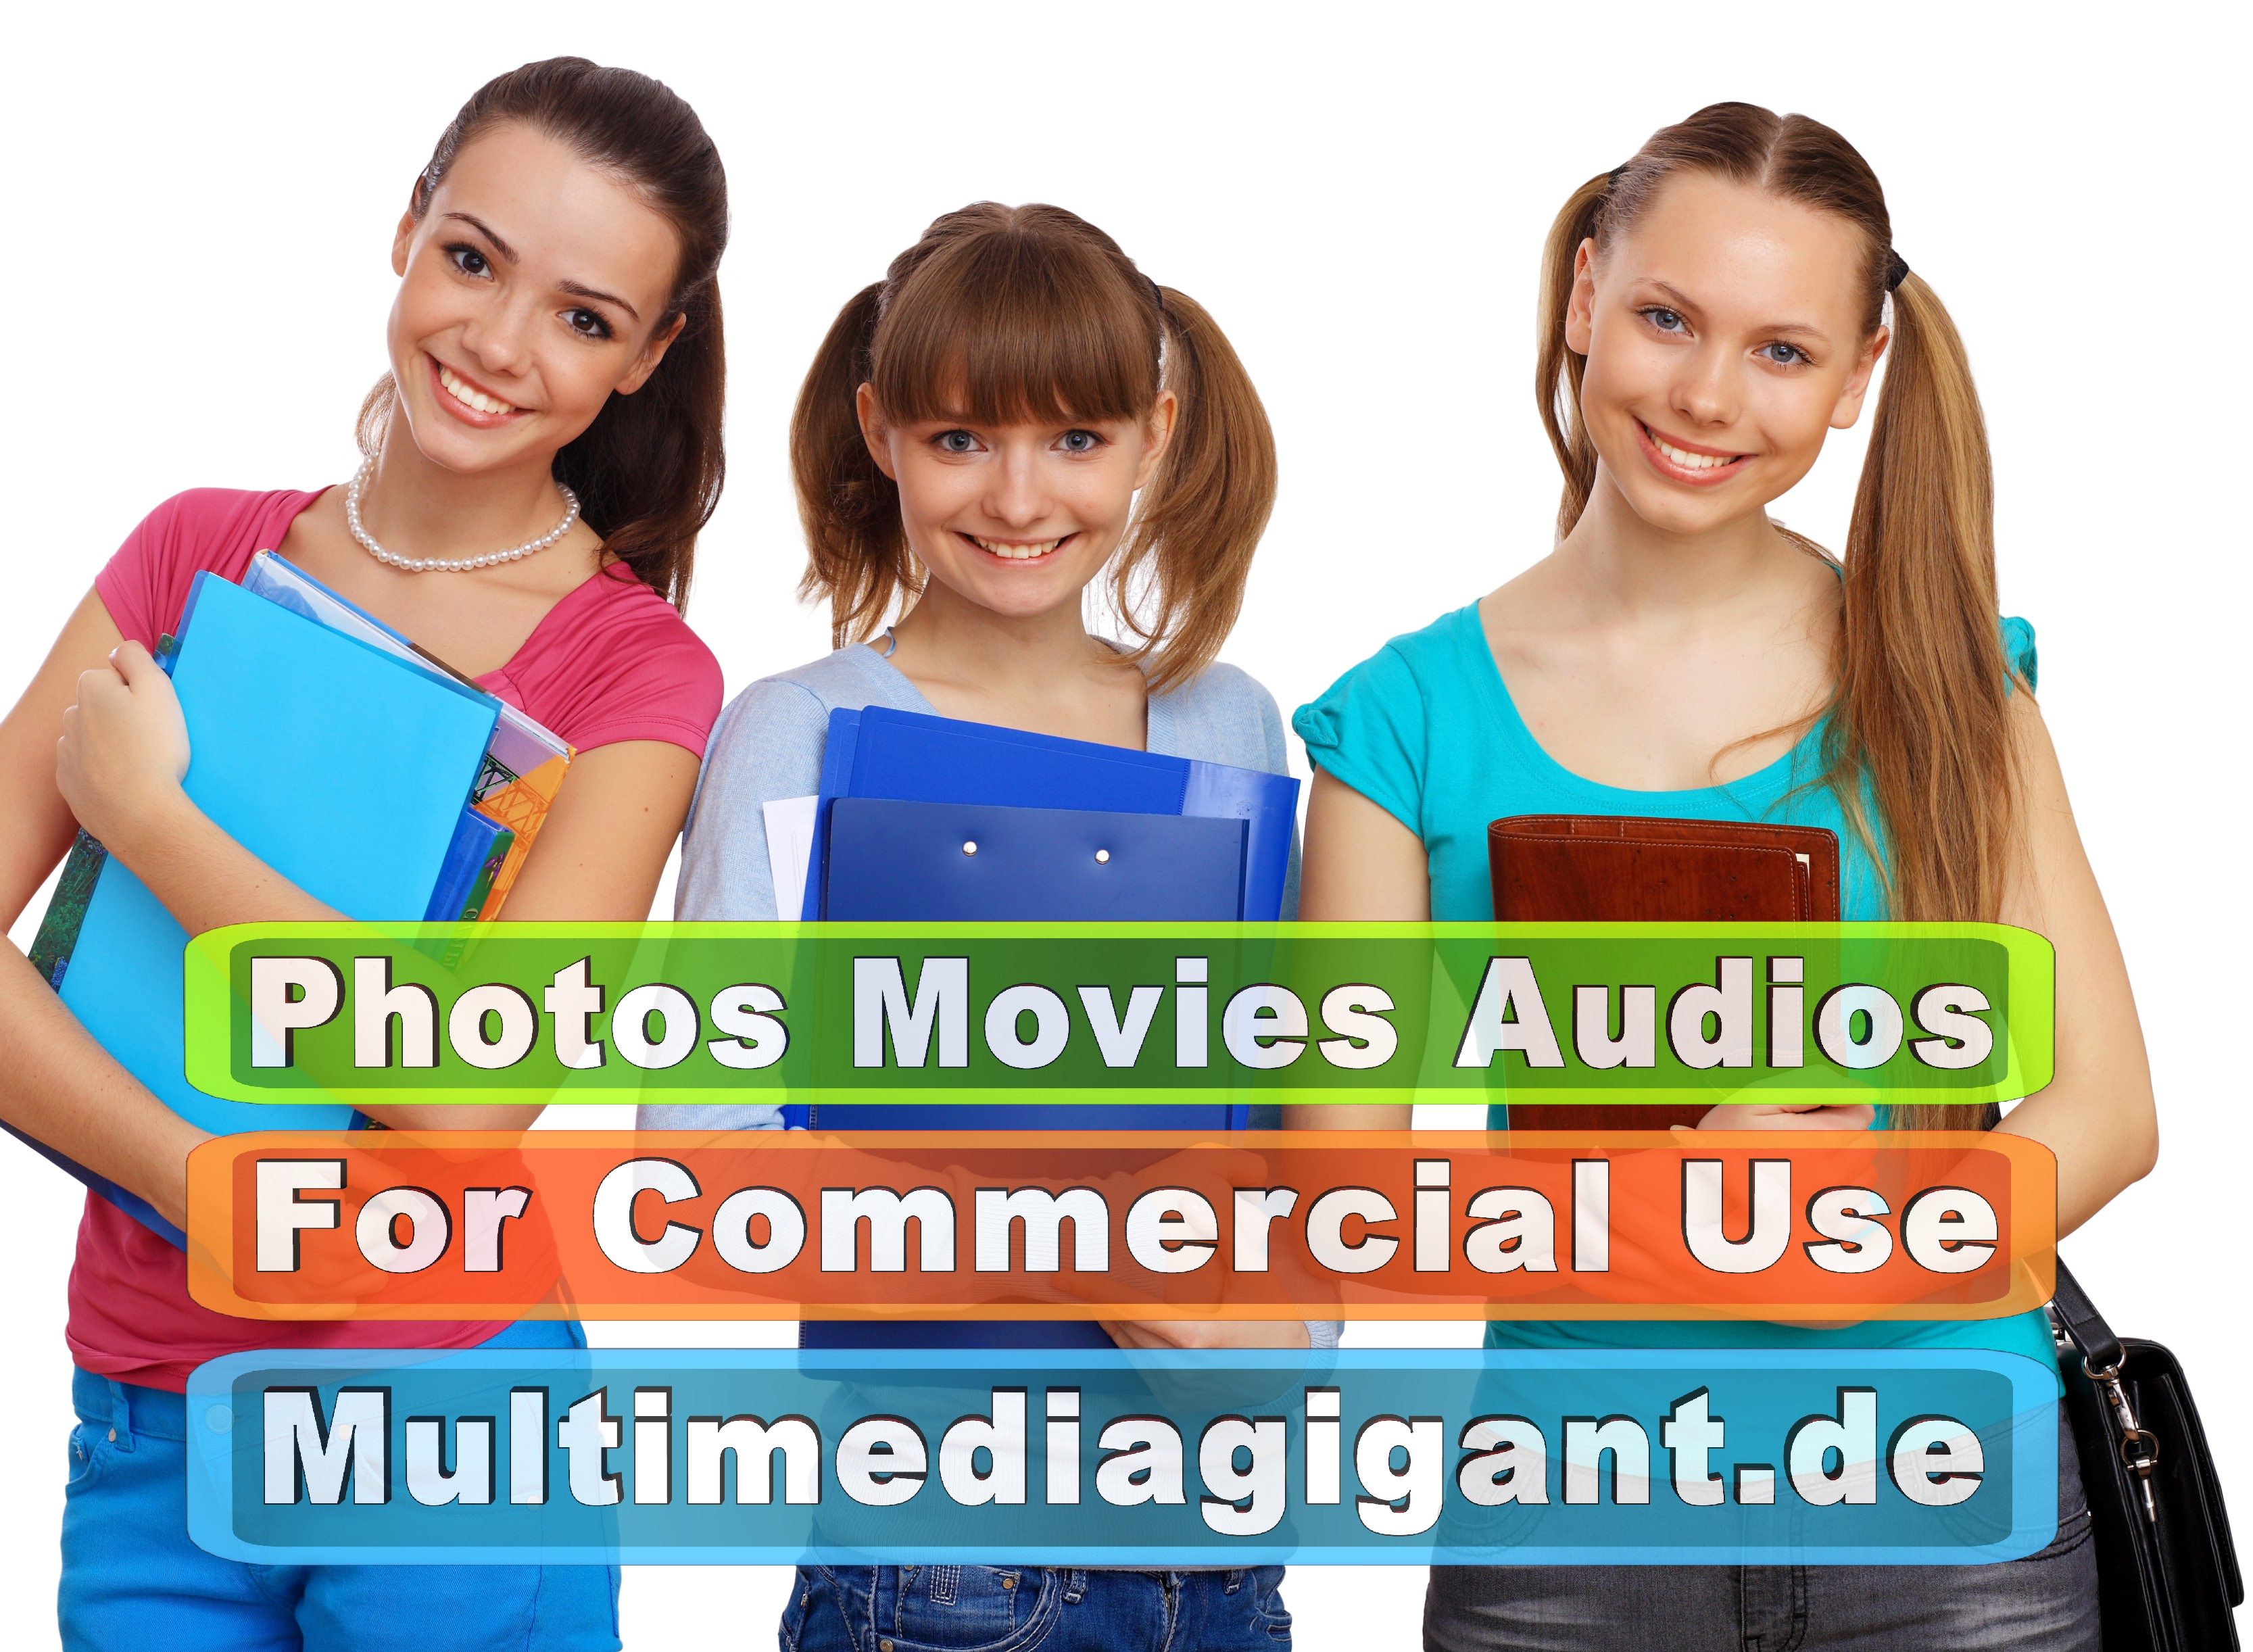 Best Royalty Free Images For Commercial Use